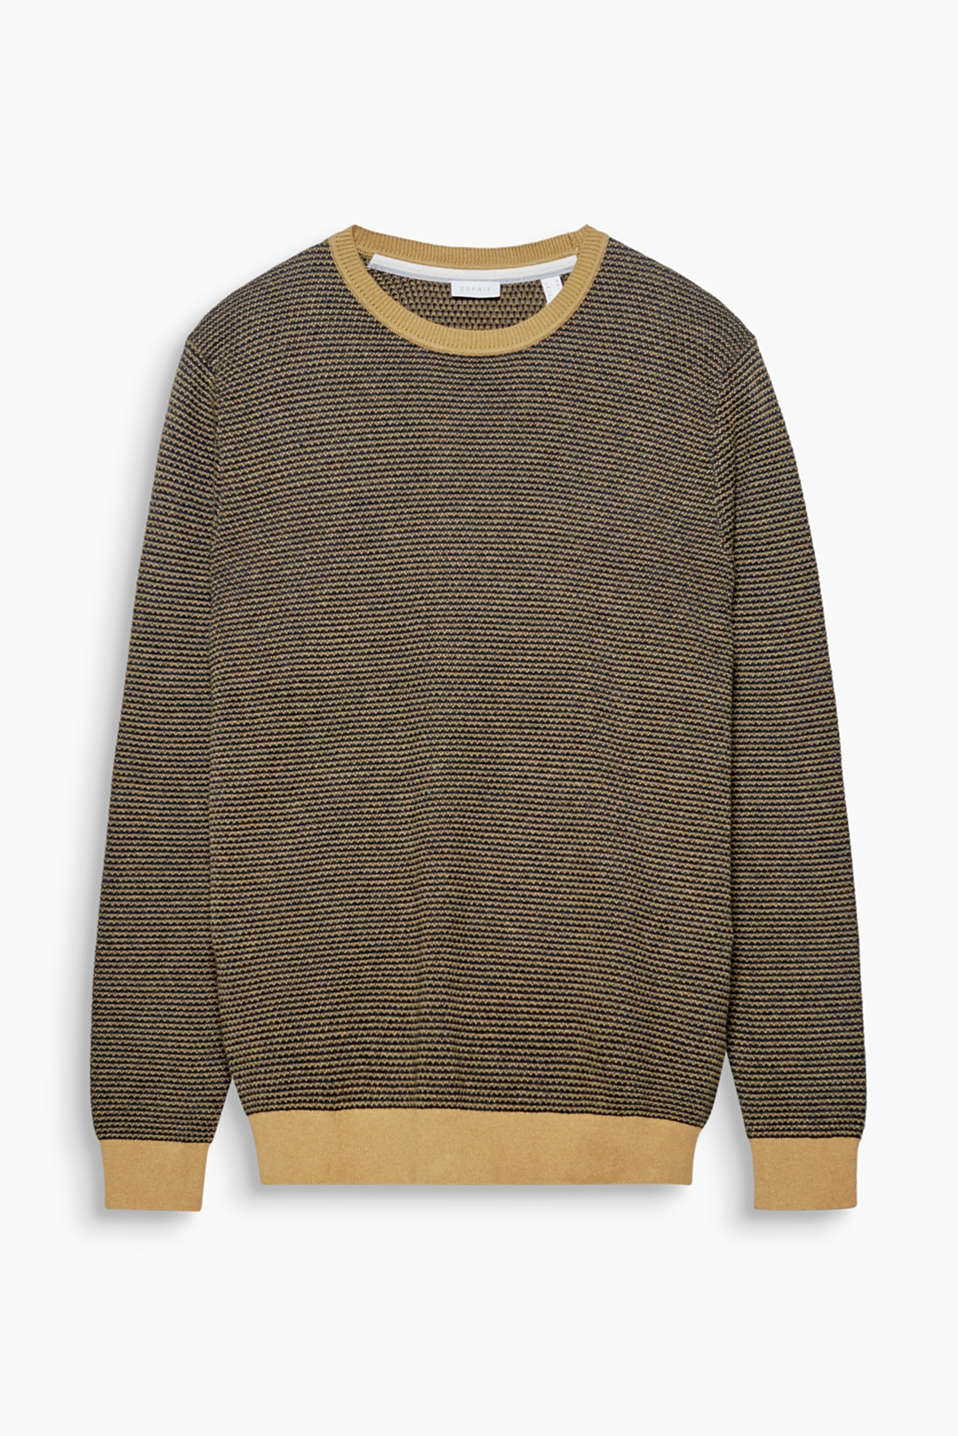 The two-tone jacquard pattern with a fine honeycomb texture gives this soft jumper its new look!